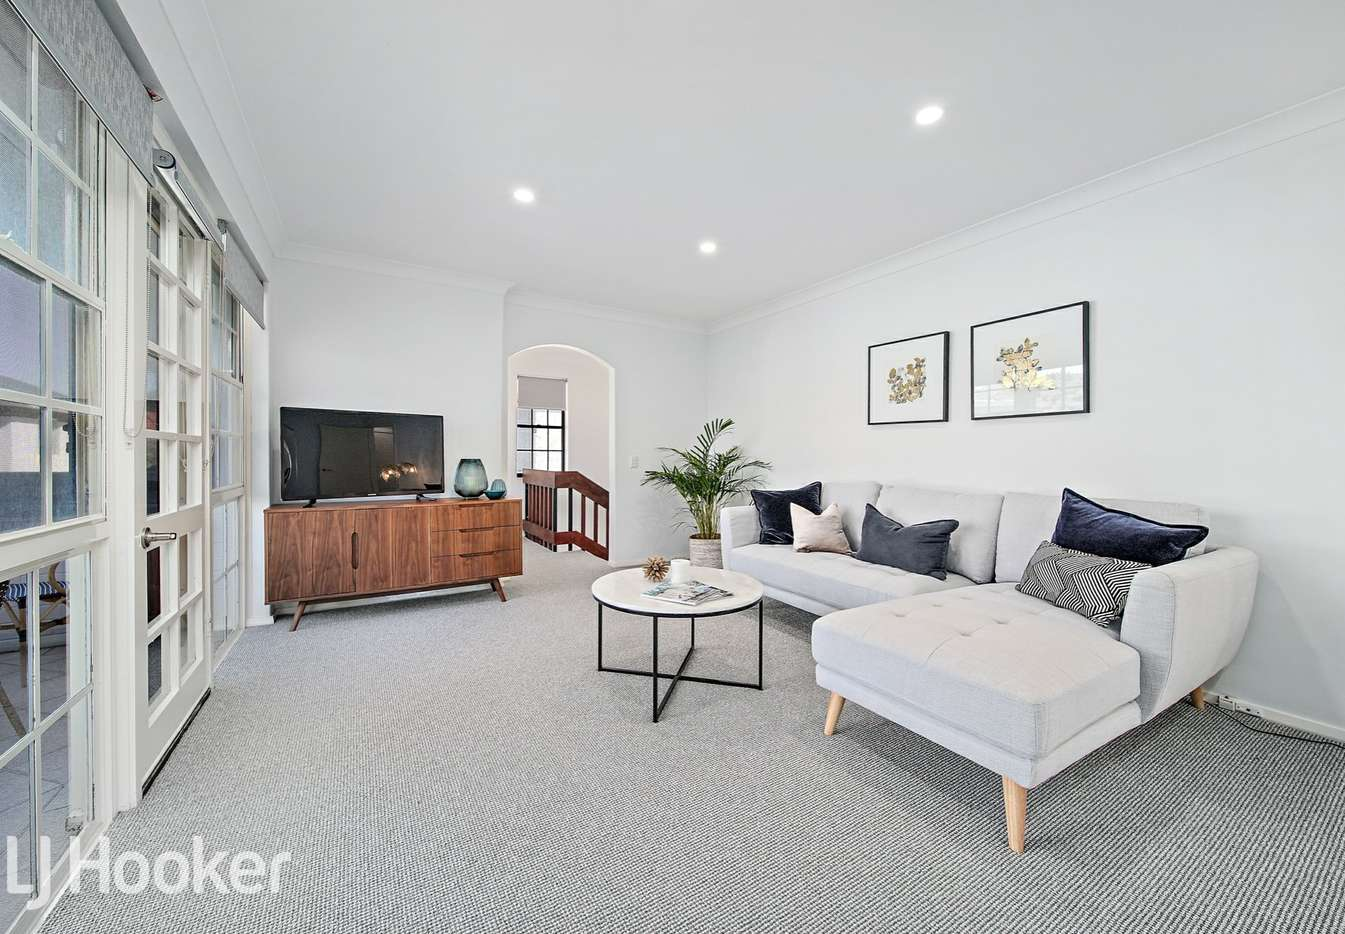 Main view of Homely unit listing, 3/6 River View Street, South Perth, WA 6151